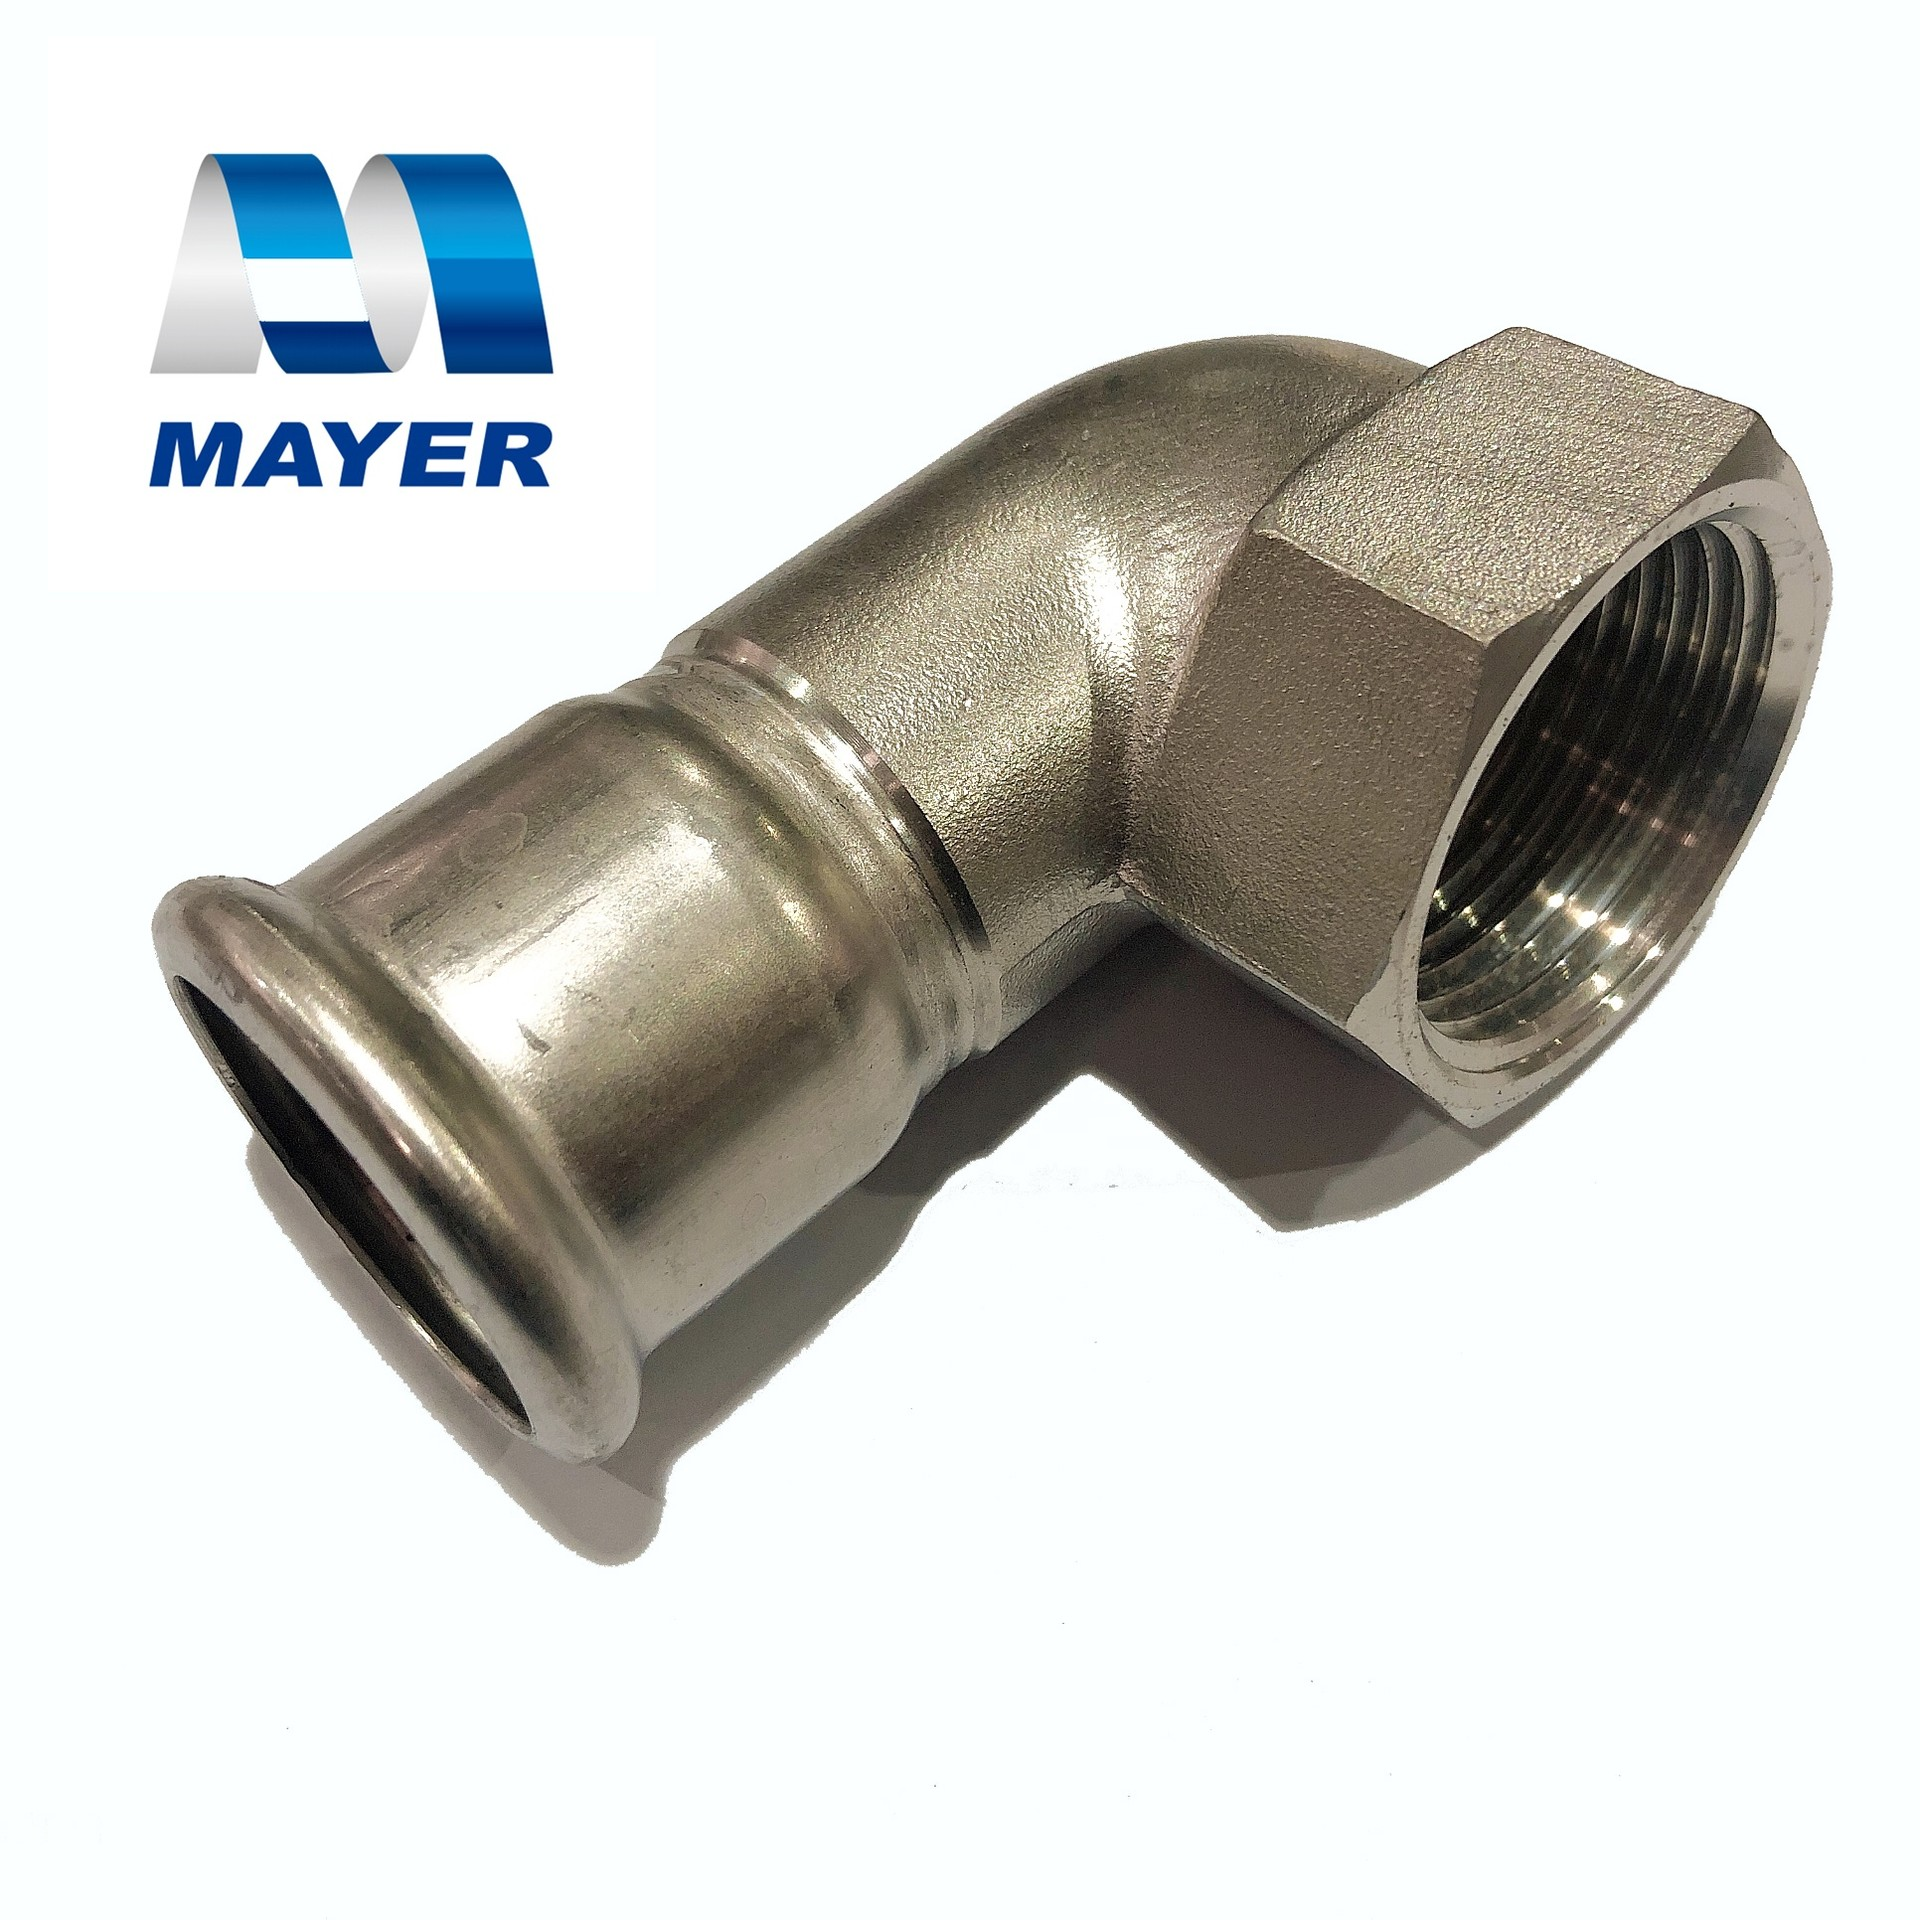 stainless steel short elbow 90 degree thread pipe fitting V profile for connection